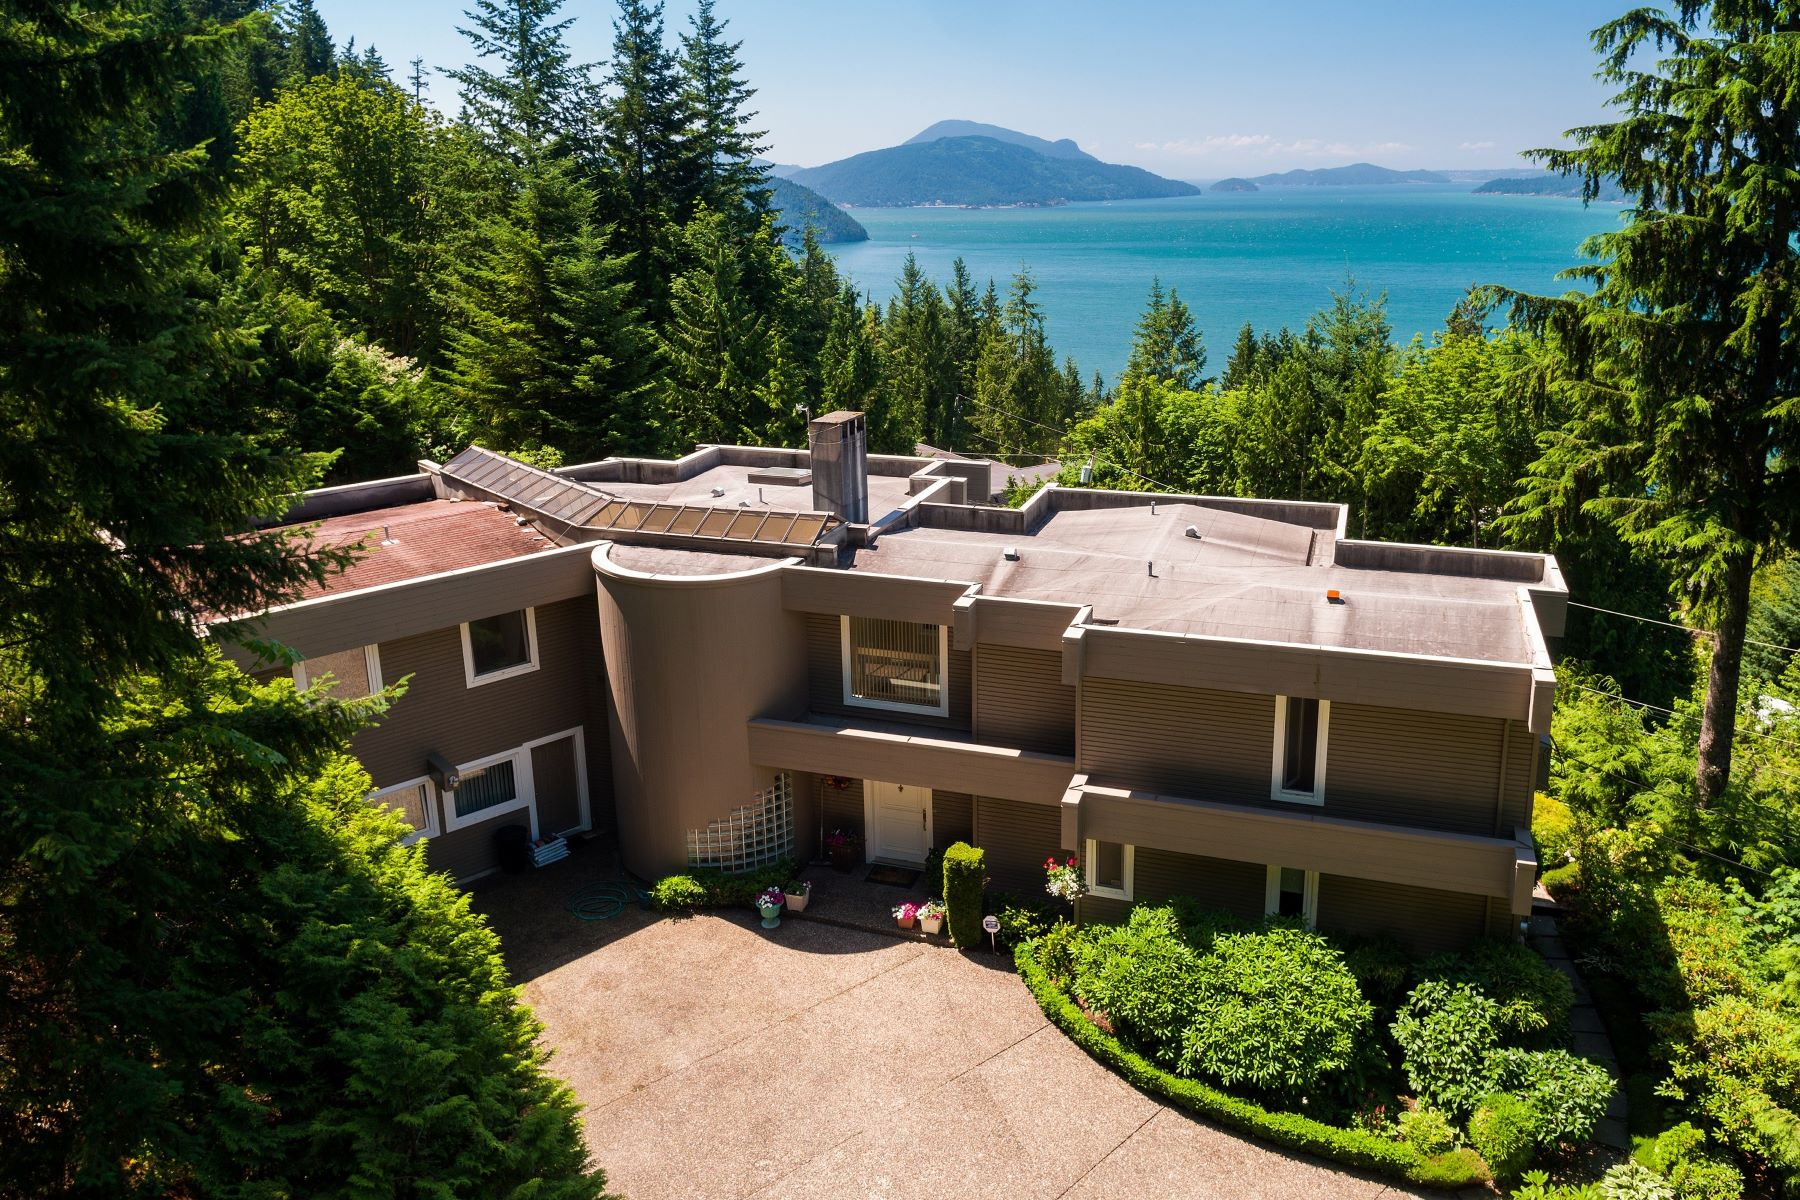 Single Family Home for Sale at Gorgeous Ocean View Home 310 Oceanview Road West Vancouver, British Columbia, V0N 2E0 Canada